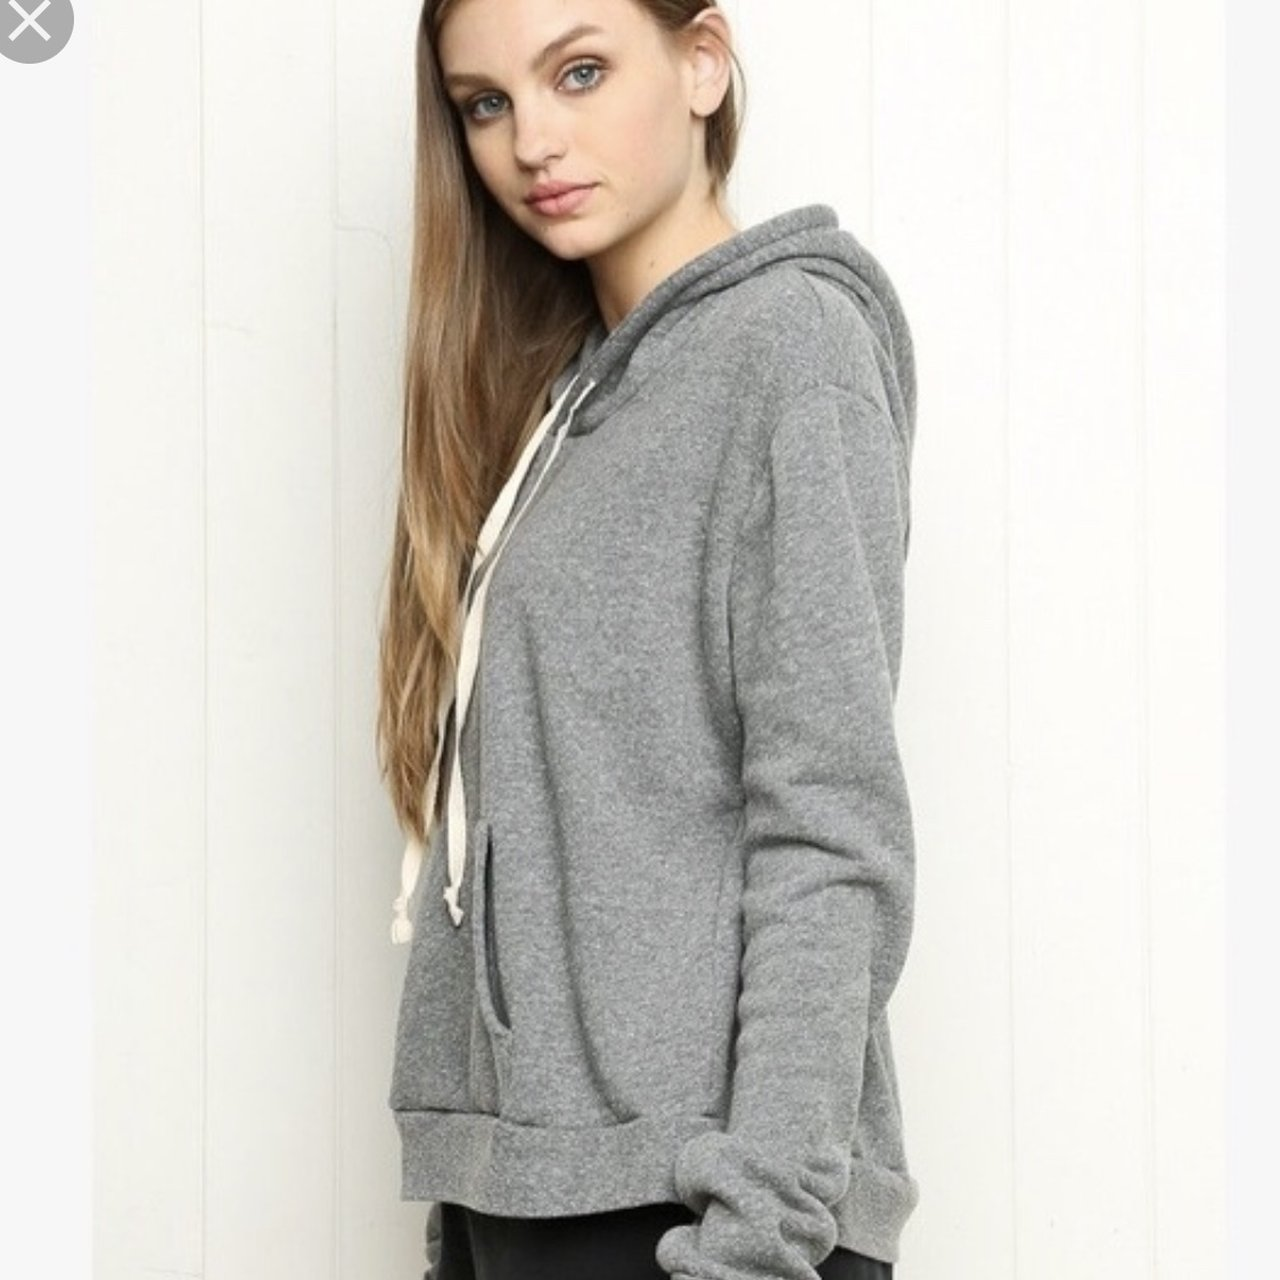 04f8983bf65a4 Cute oversized gray light hoodie from brandy Melville 💕 no - Depop